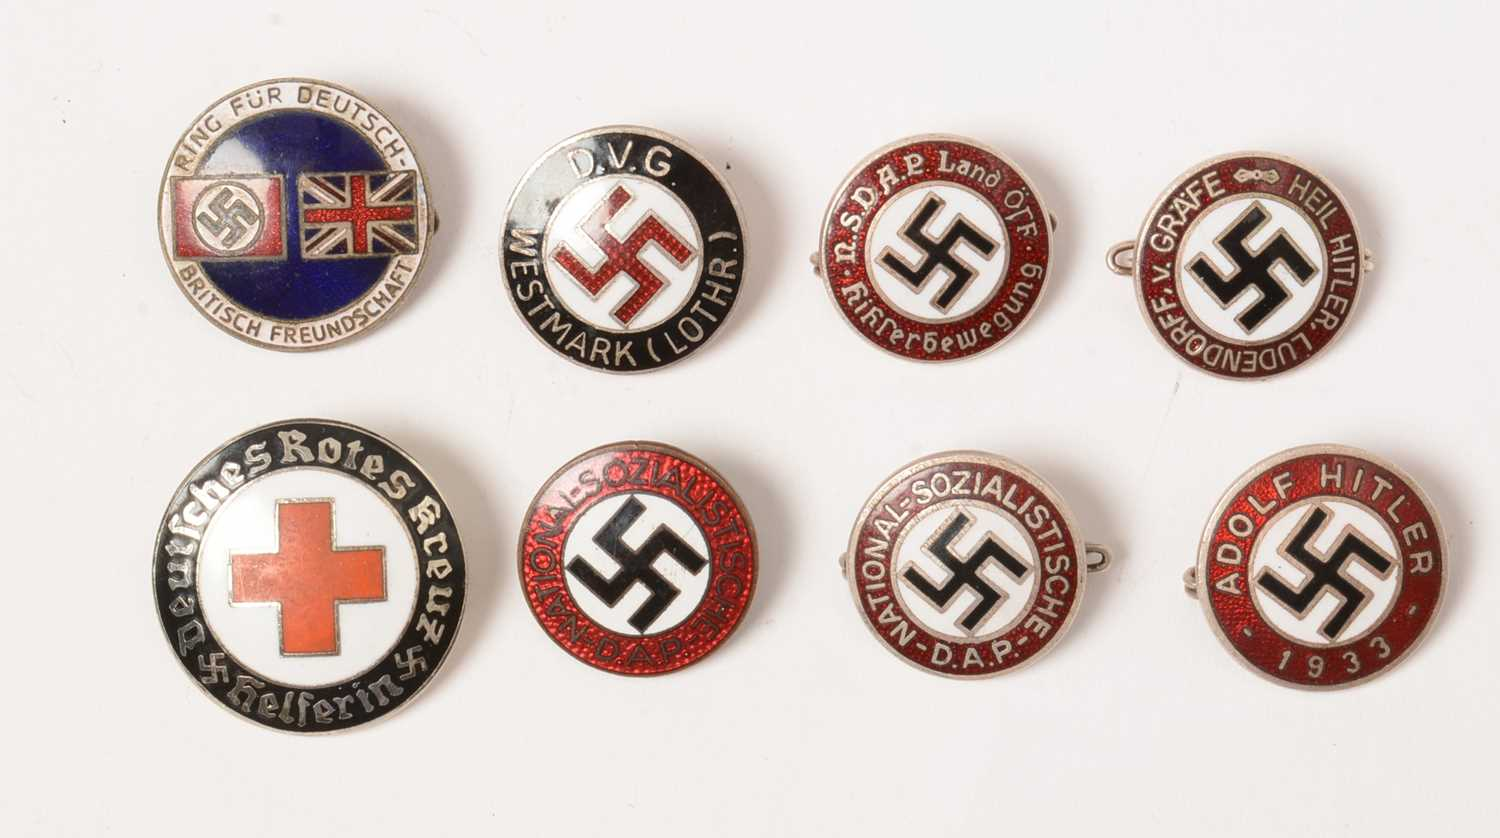 Lot 1053 - A collection of WWII enamel lapel badges